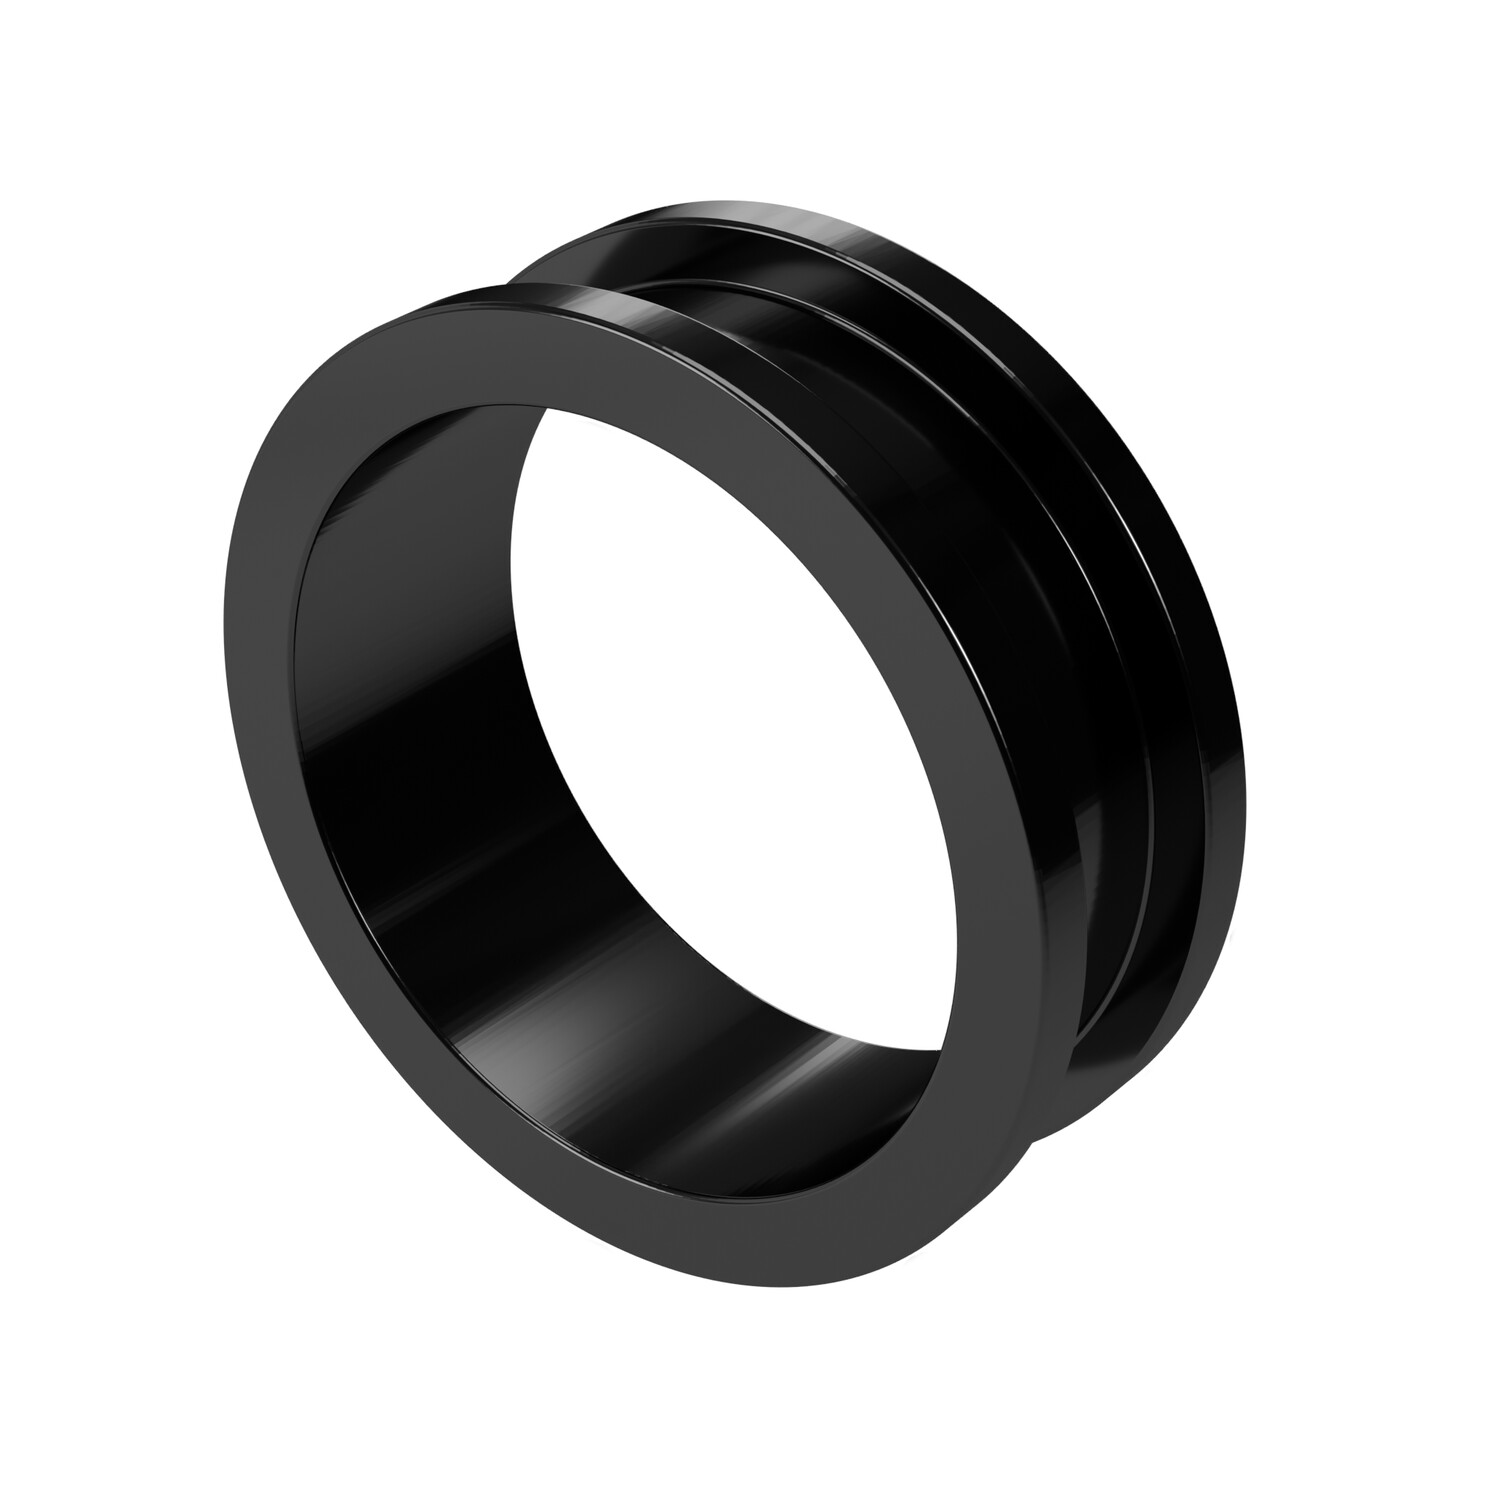 24mm Steel Ear Tunnel Black Screw Back Plug Gothic Jewellery Alternative